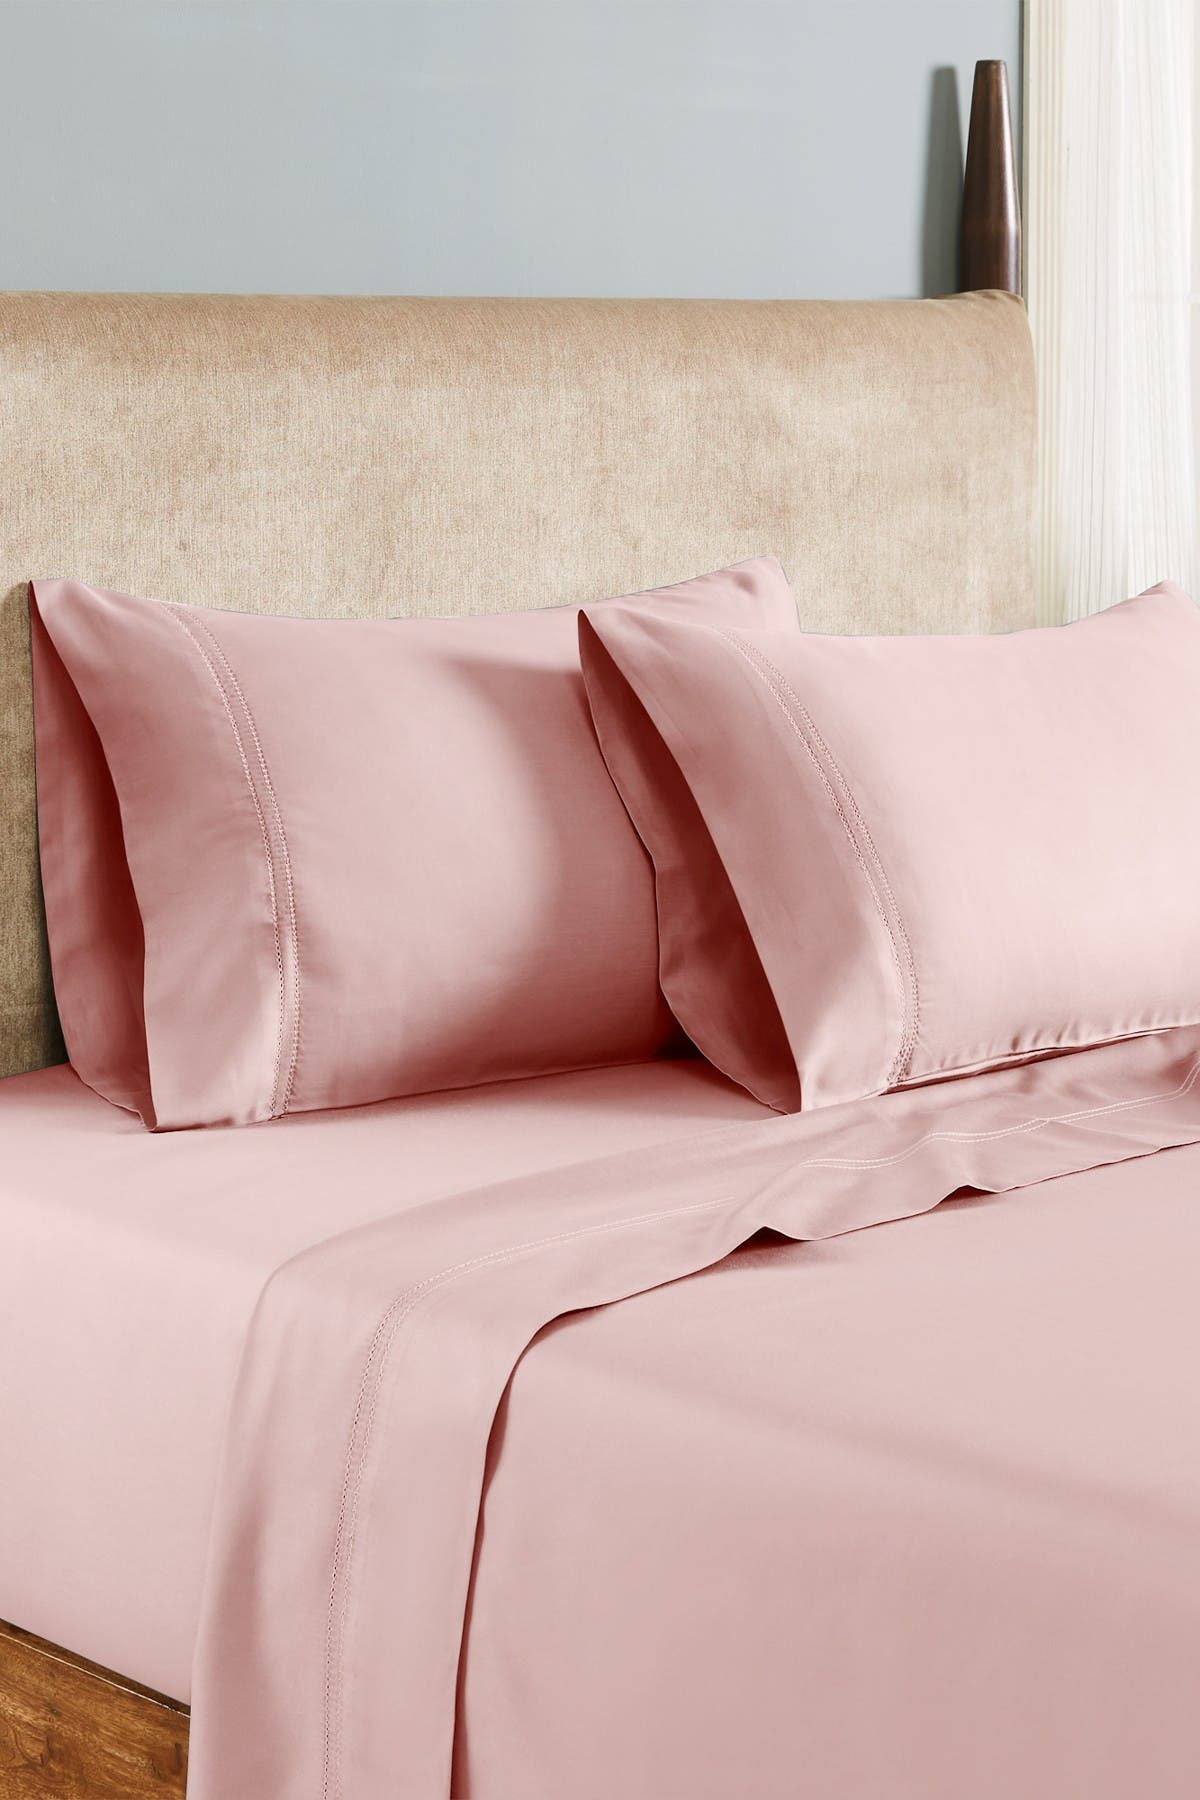 Modern Threads 1000 Thread Count Tri Blend 6 Piece Sheet Set With Double Hole Hem Rose King Nordstrom Rack